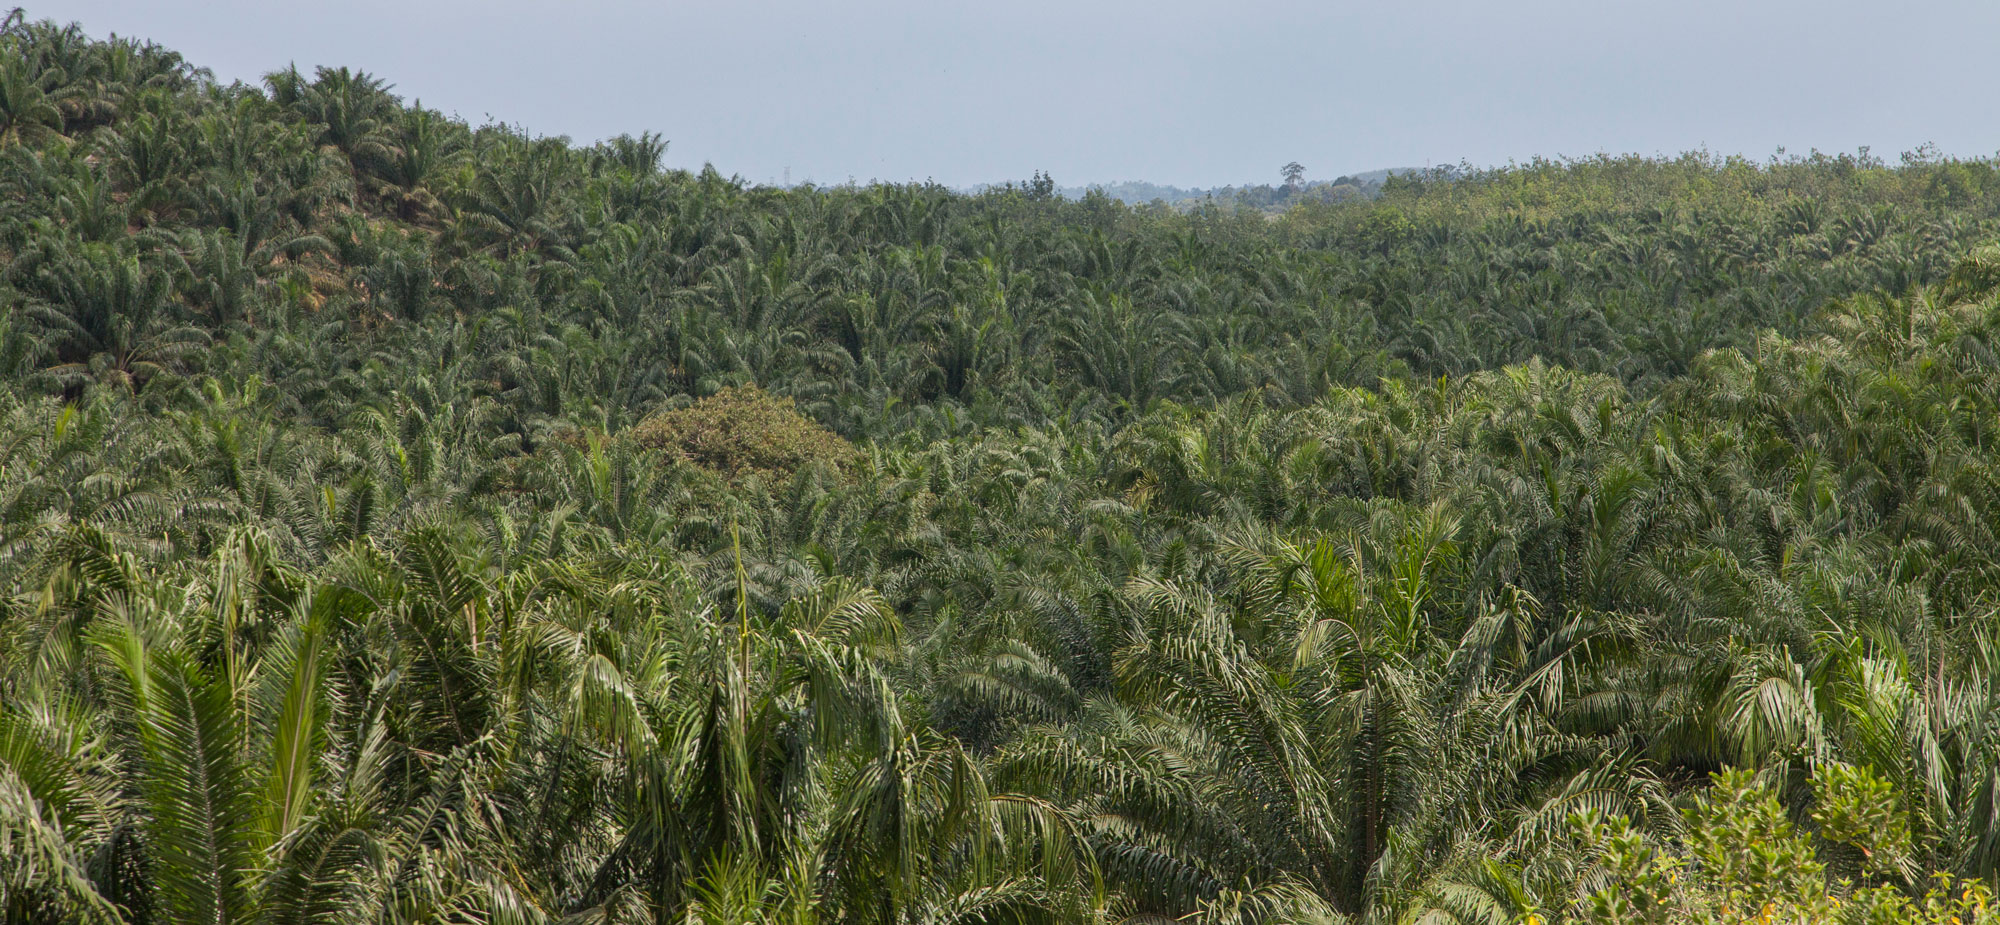 Oil palm plantation in Malaysia. Palm oil is used in products from soap and cosmetics to food and snacks. The increasing demand for palm oil around the world is causing wide spread de-forestation in for example Malaysia and on Borneo, making way for vast monocultures of oil palms. Photo: N. Desagher/Azote